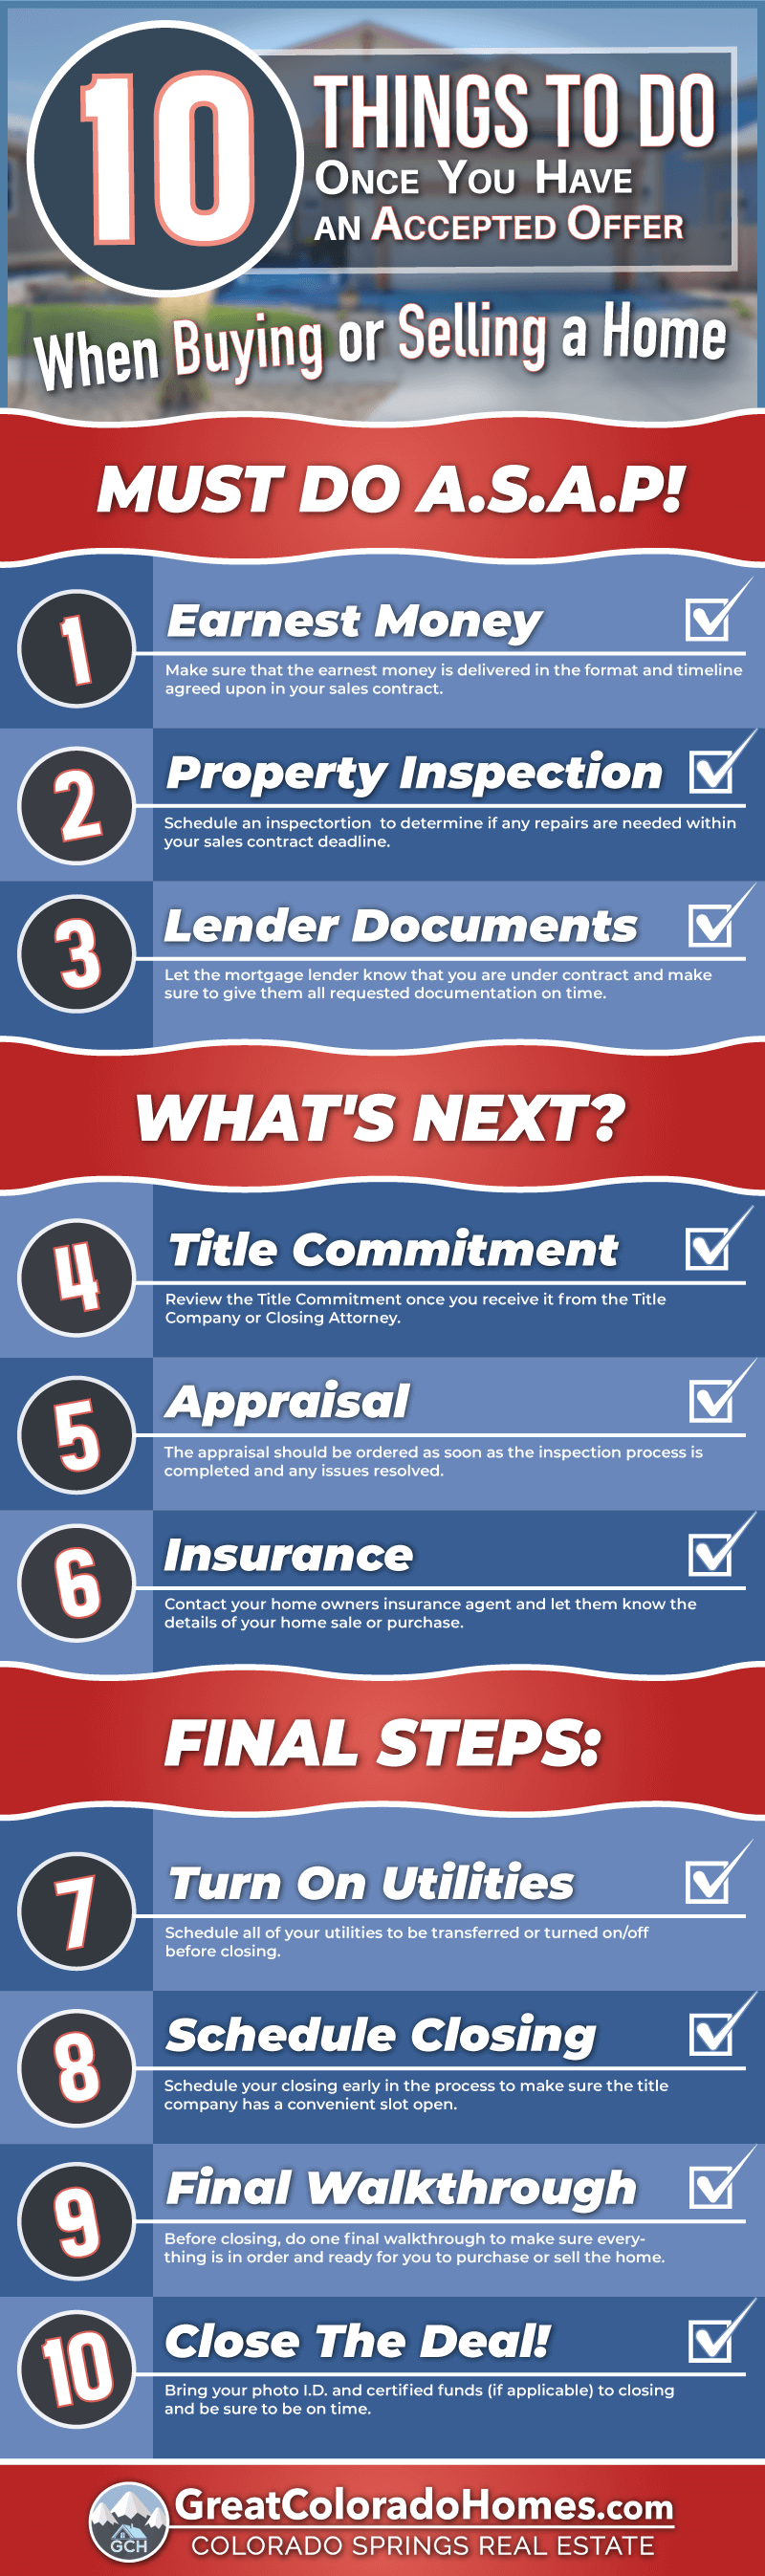 10 Things to Do Once Your Offer is Accepted When Buying or Selling A Home Infographic